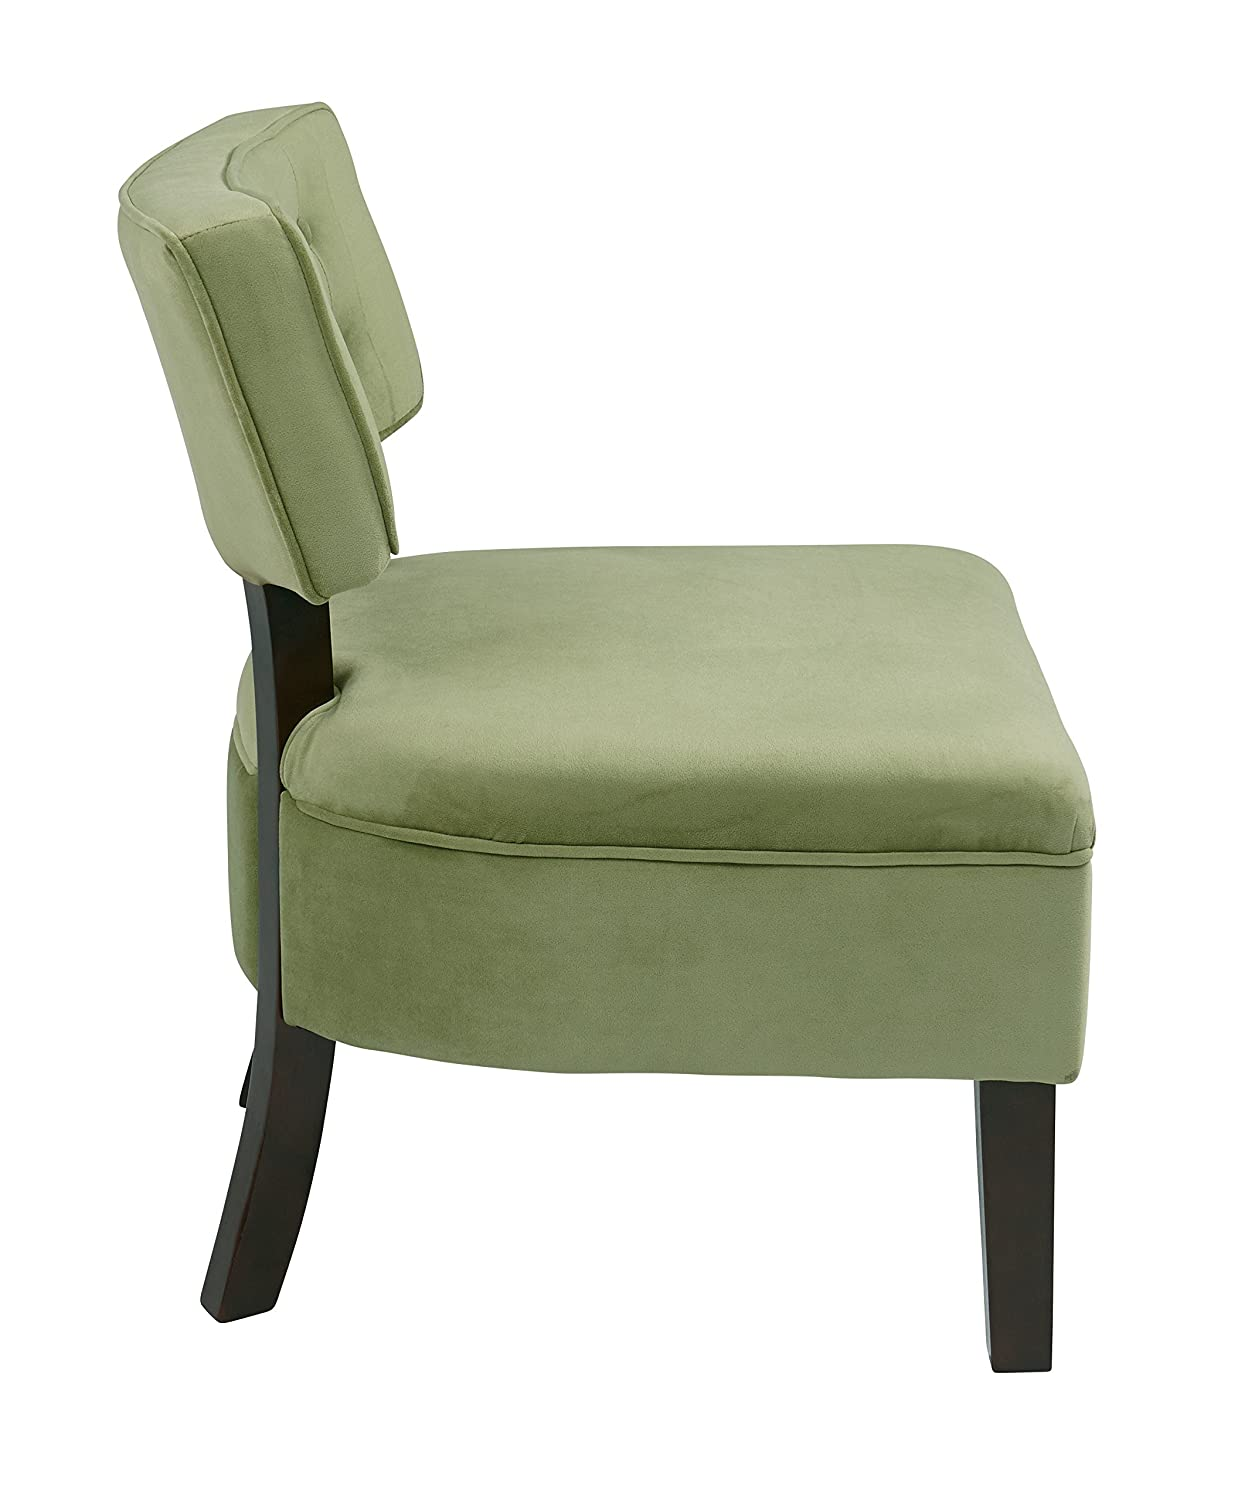 AVE SIX Curves Upholstered Button Accent Chair with Espresso Finish Wood Legs and Back Supports, Spring Green Velvet